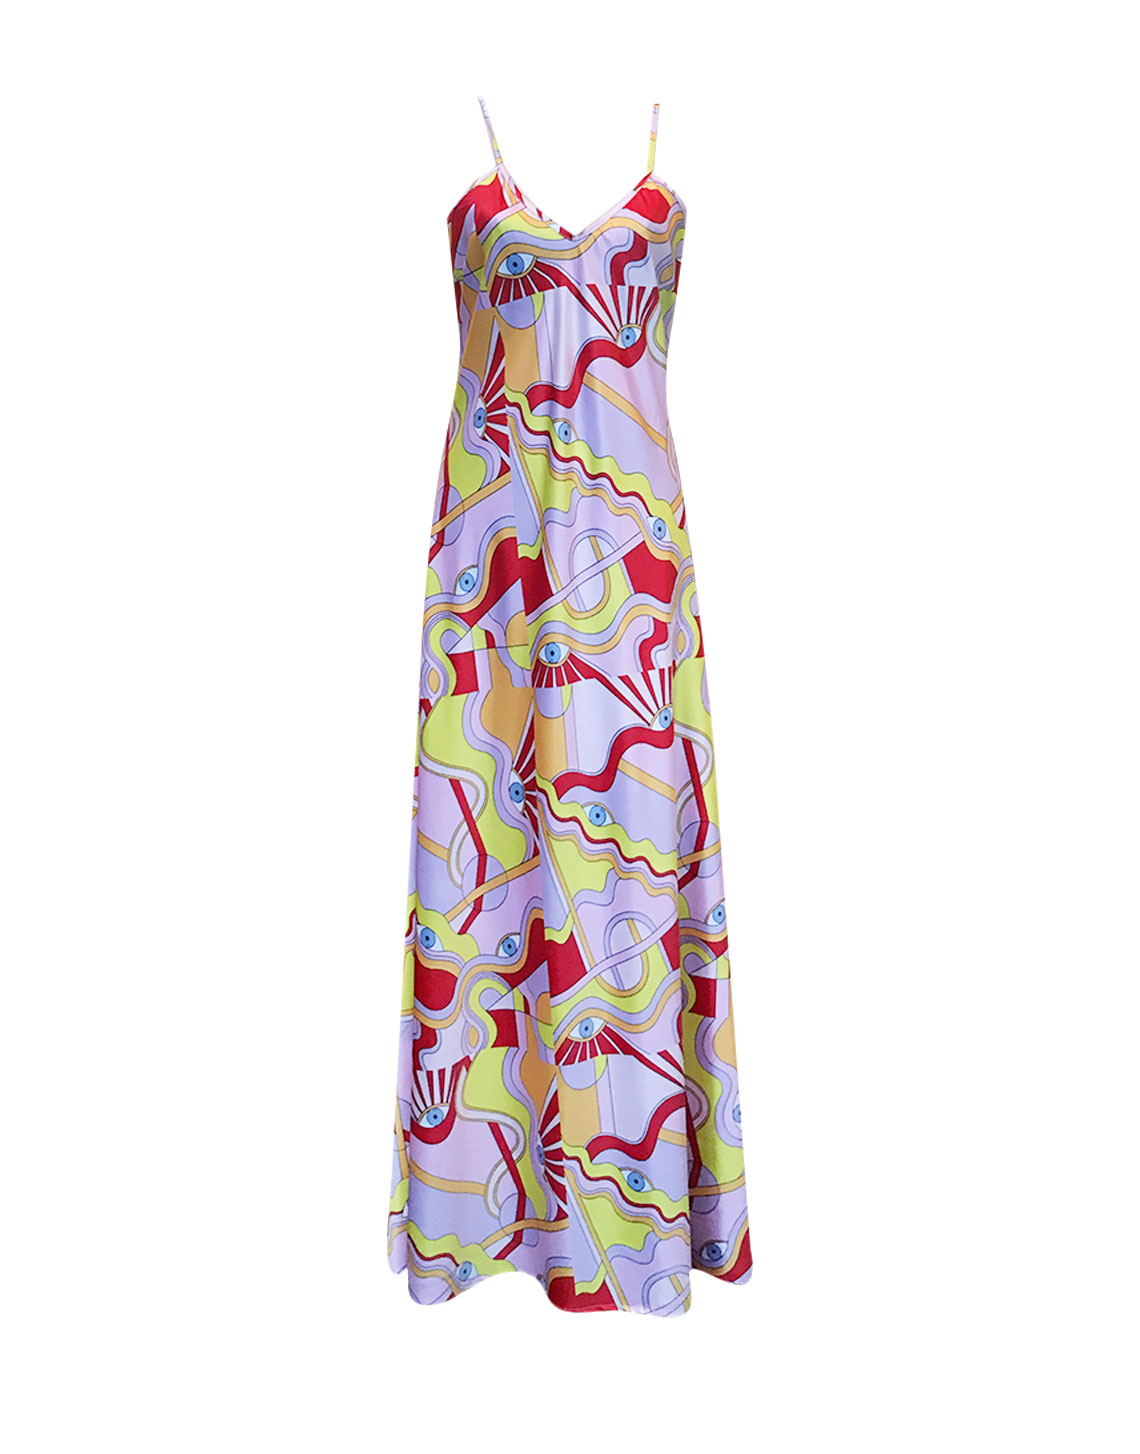 Moonflower Dress - Eye Print by Jessica K on curated-crowd.com